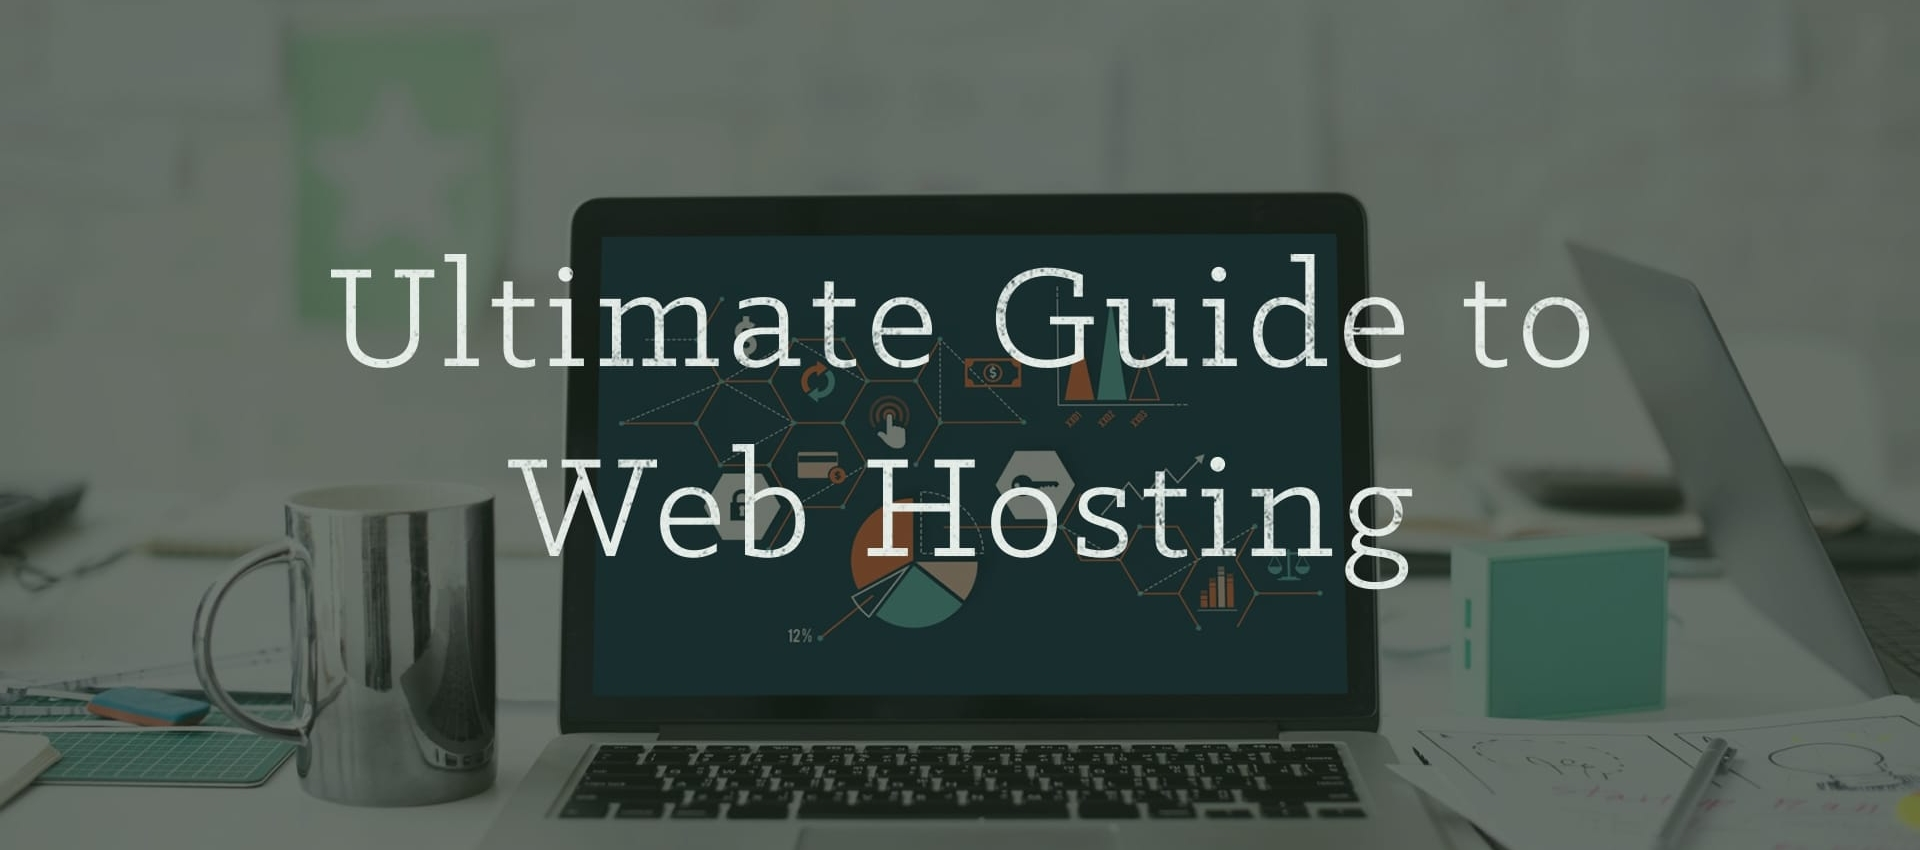 ultimate-guide-to-web-hosting